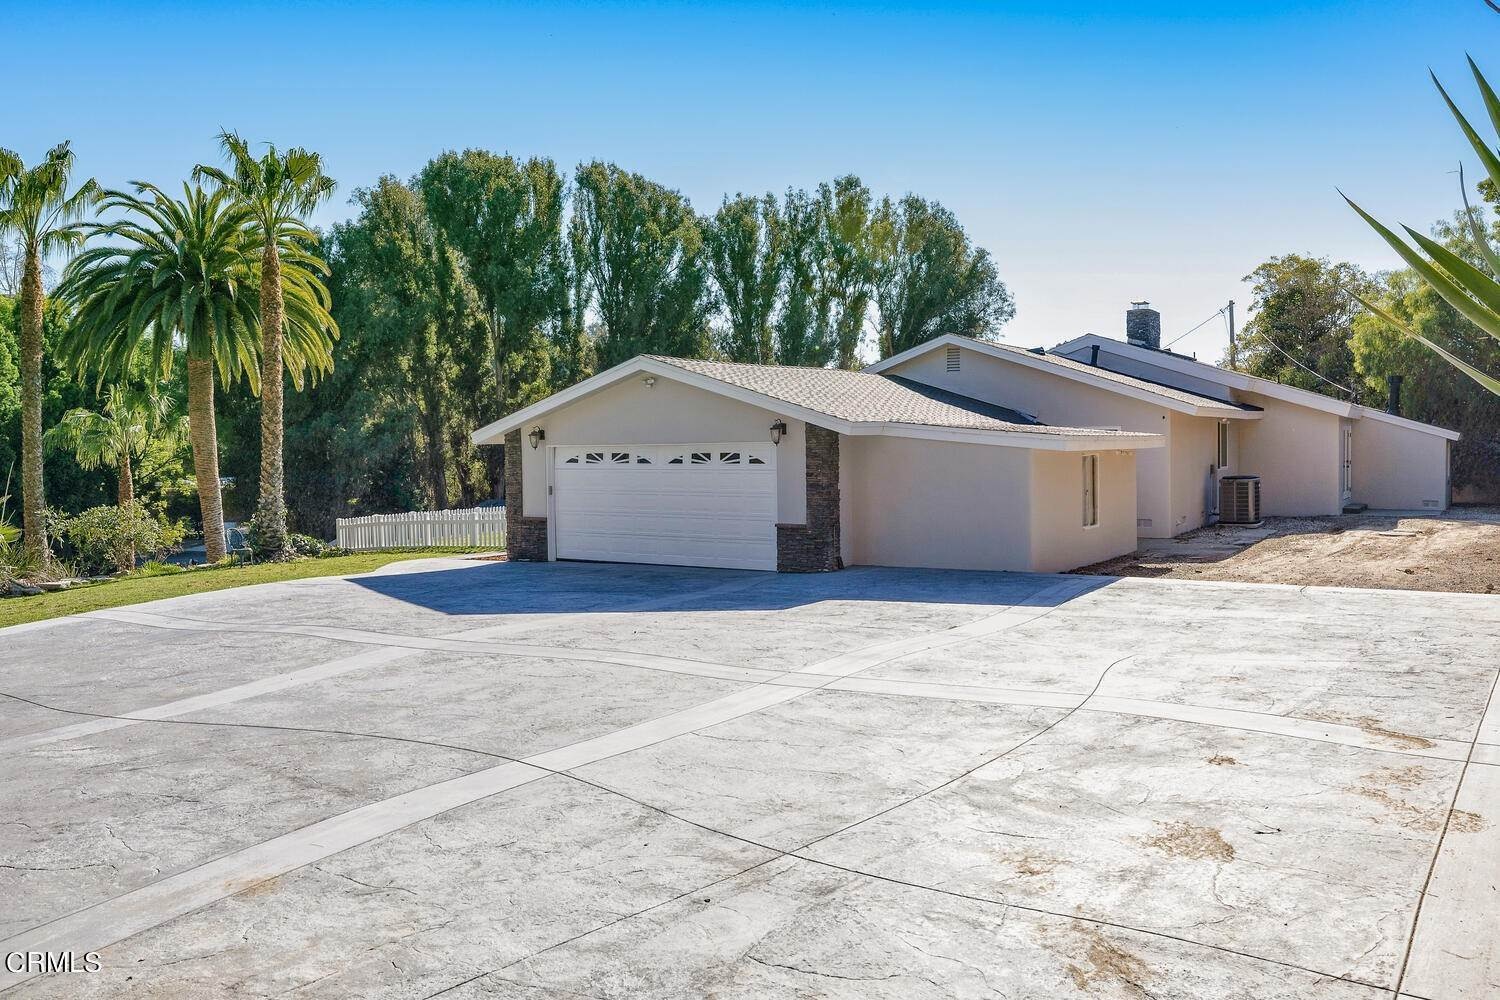 4. Single Family Homes for Sale at 39 - 41 Ramona Place Camarillo, California 93010 United States